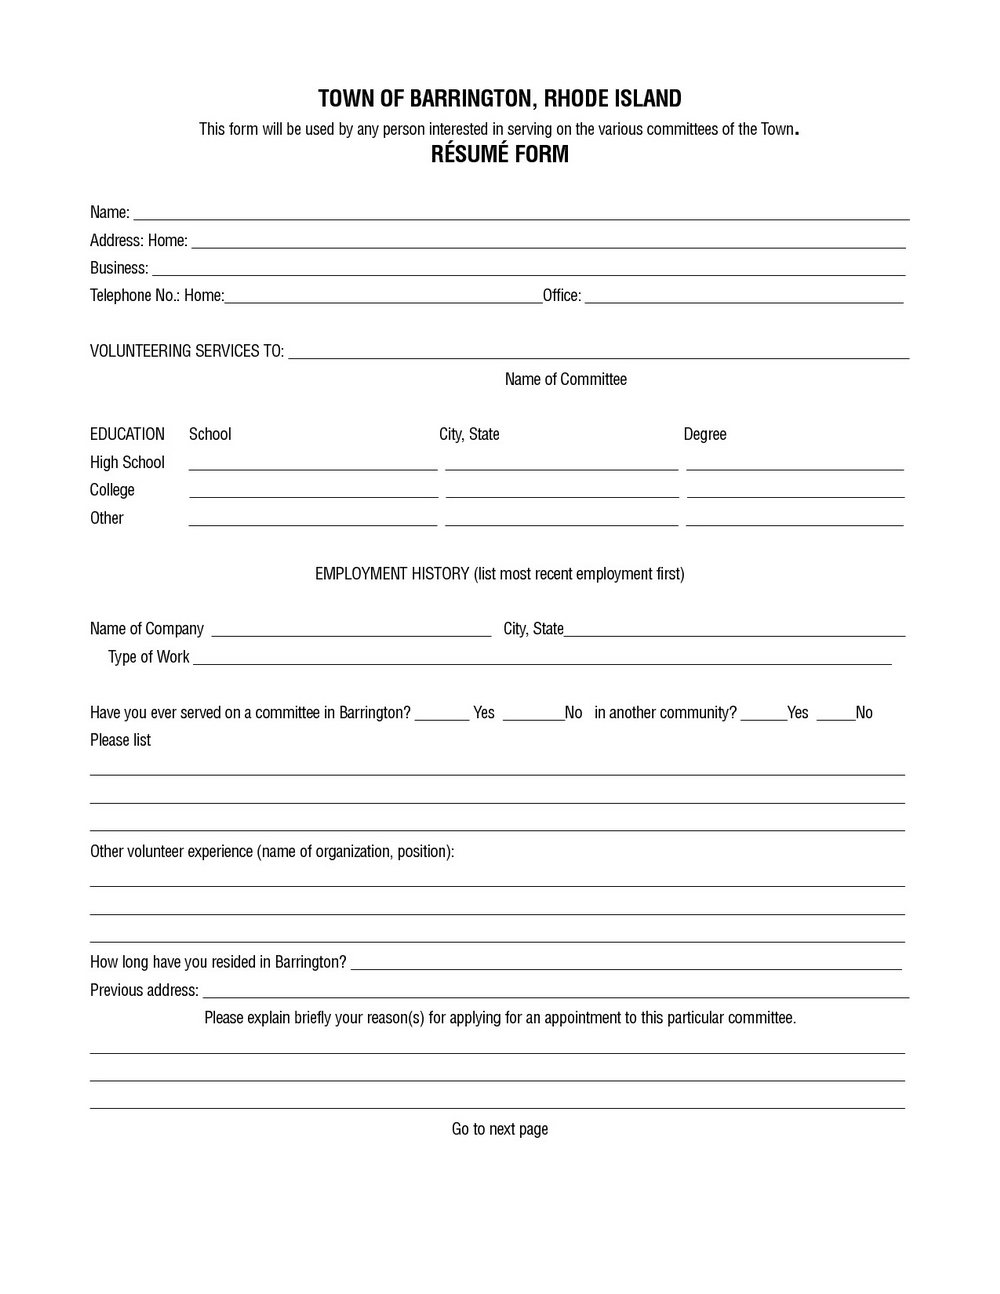 Resume Application Form Free Download